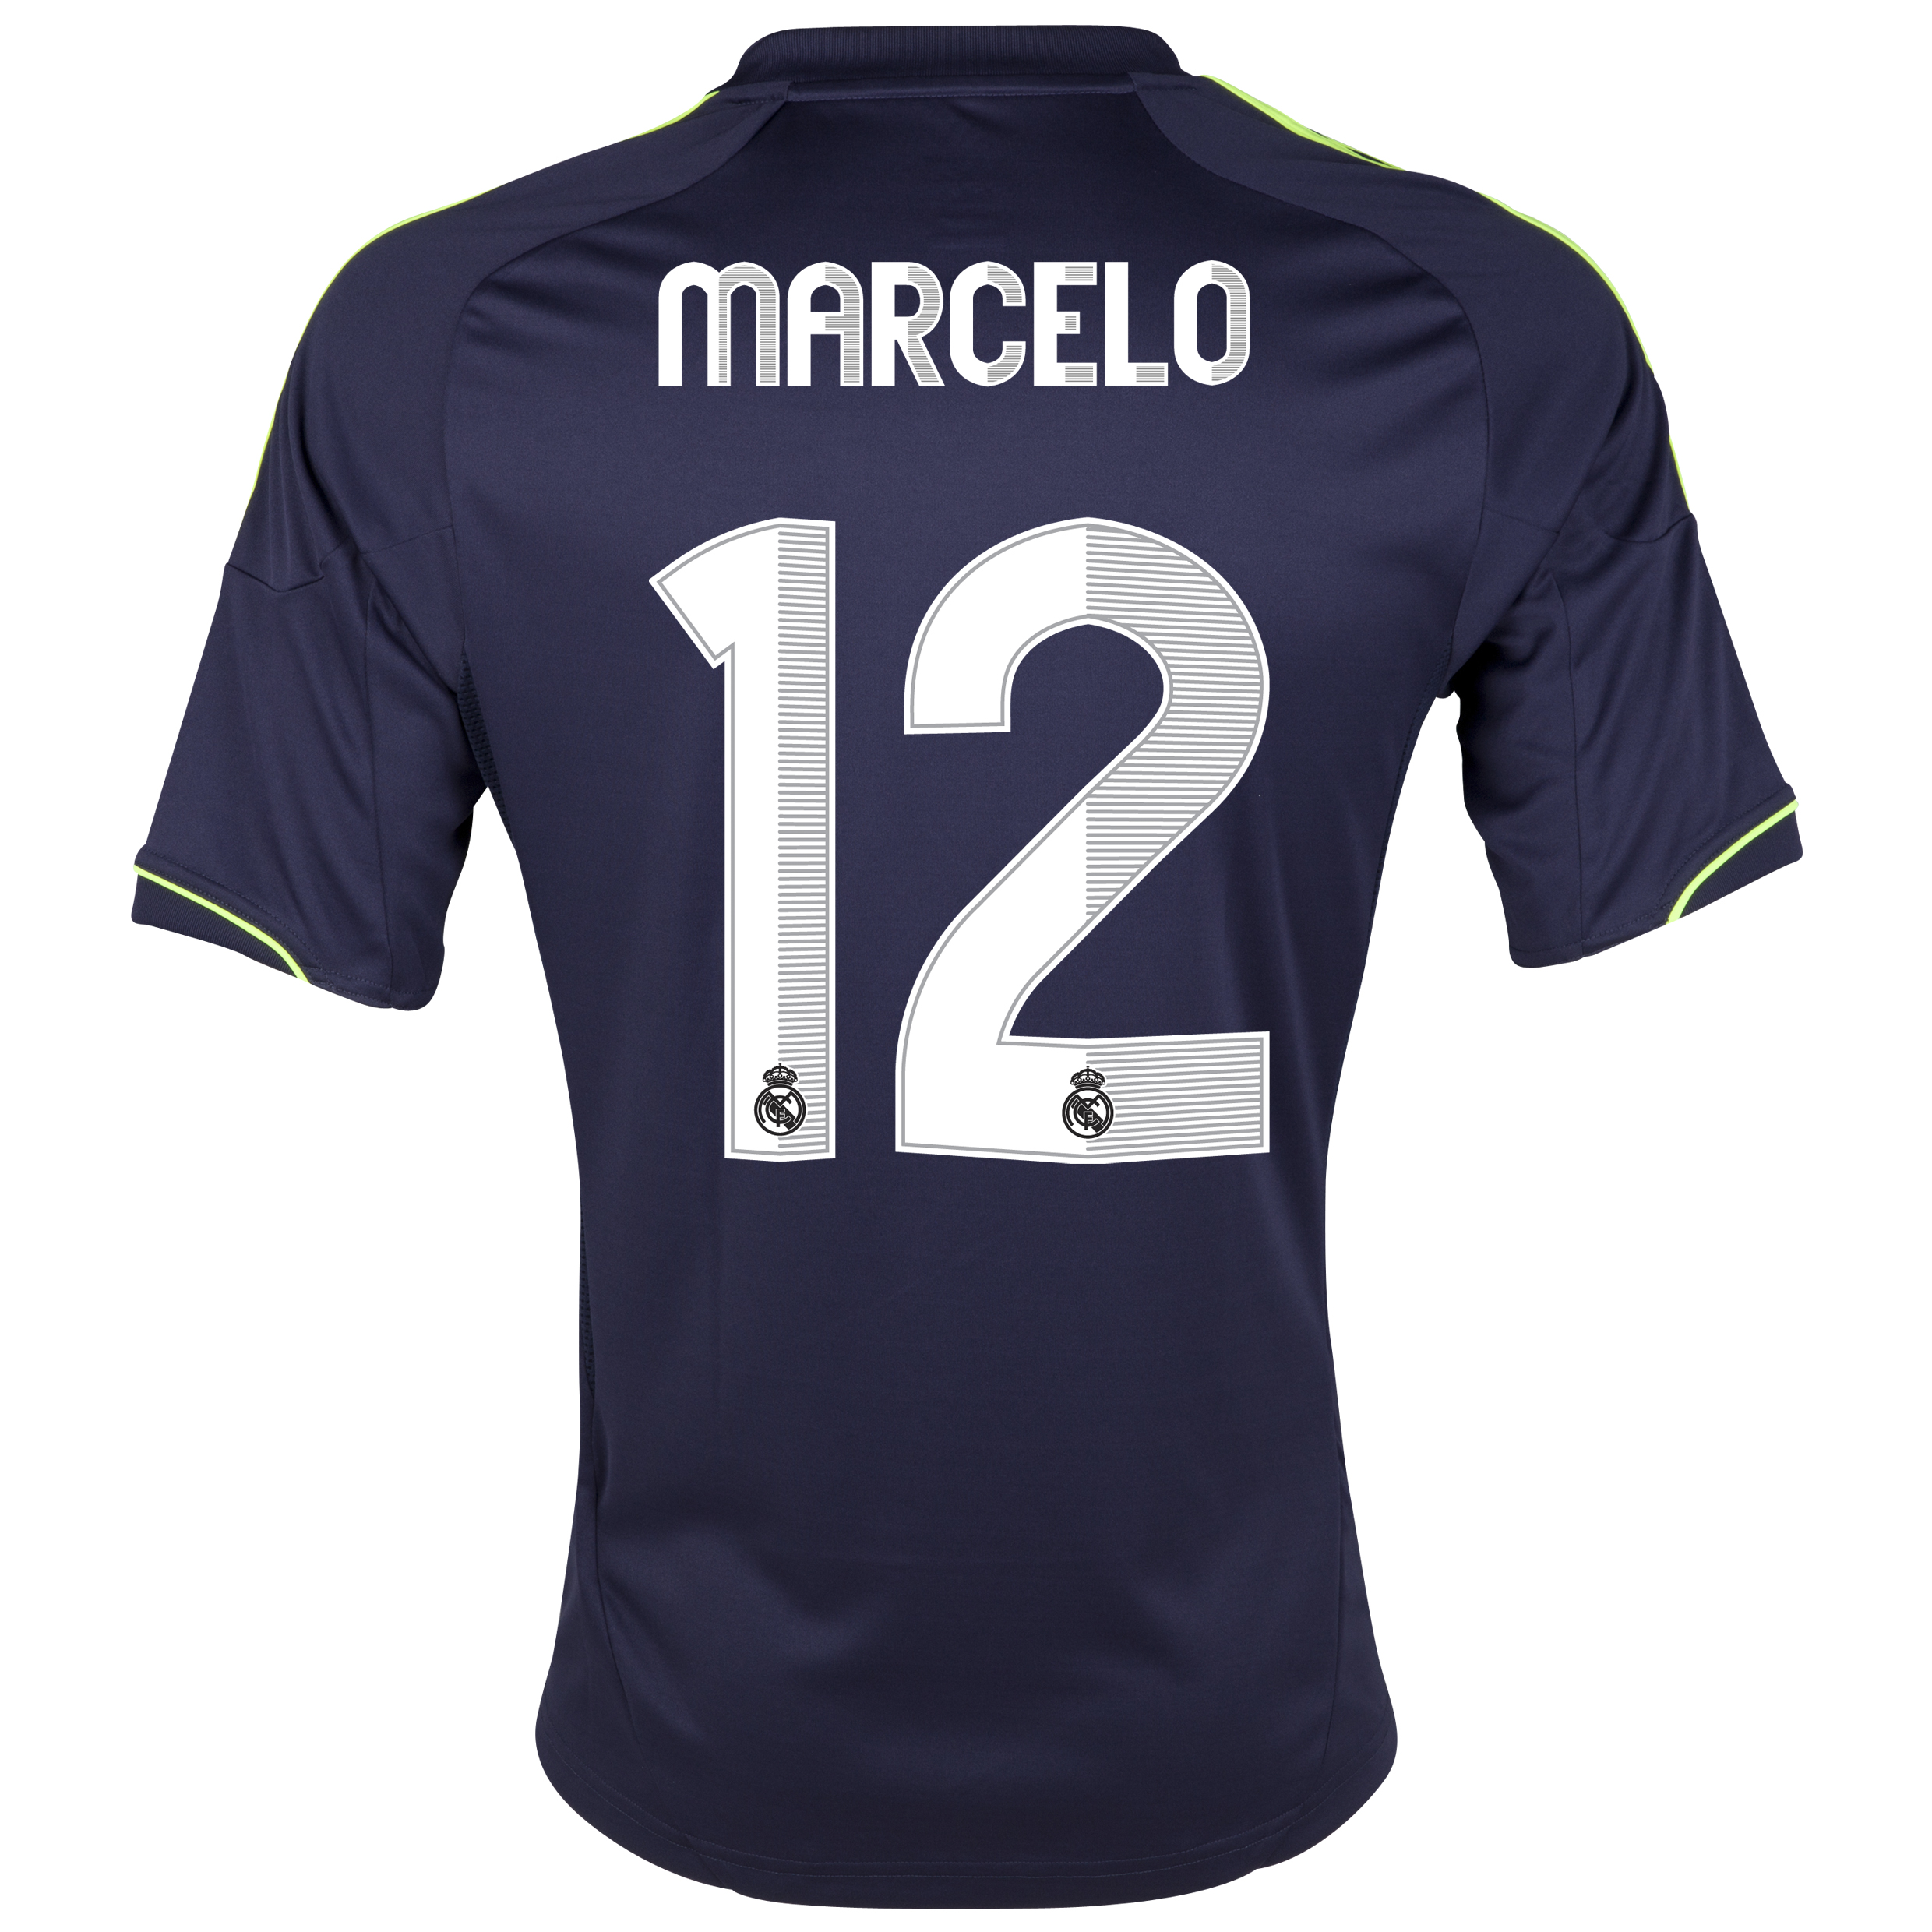 Camiseta visitante Real Madrid 2012/13 con impresin 12 Marcelo - Nio